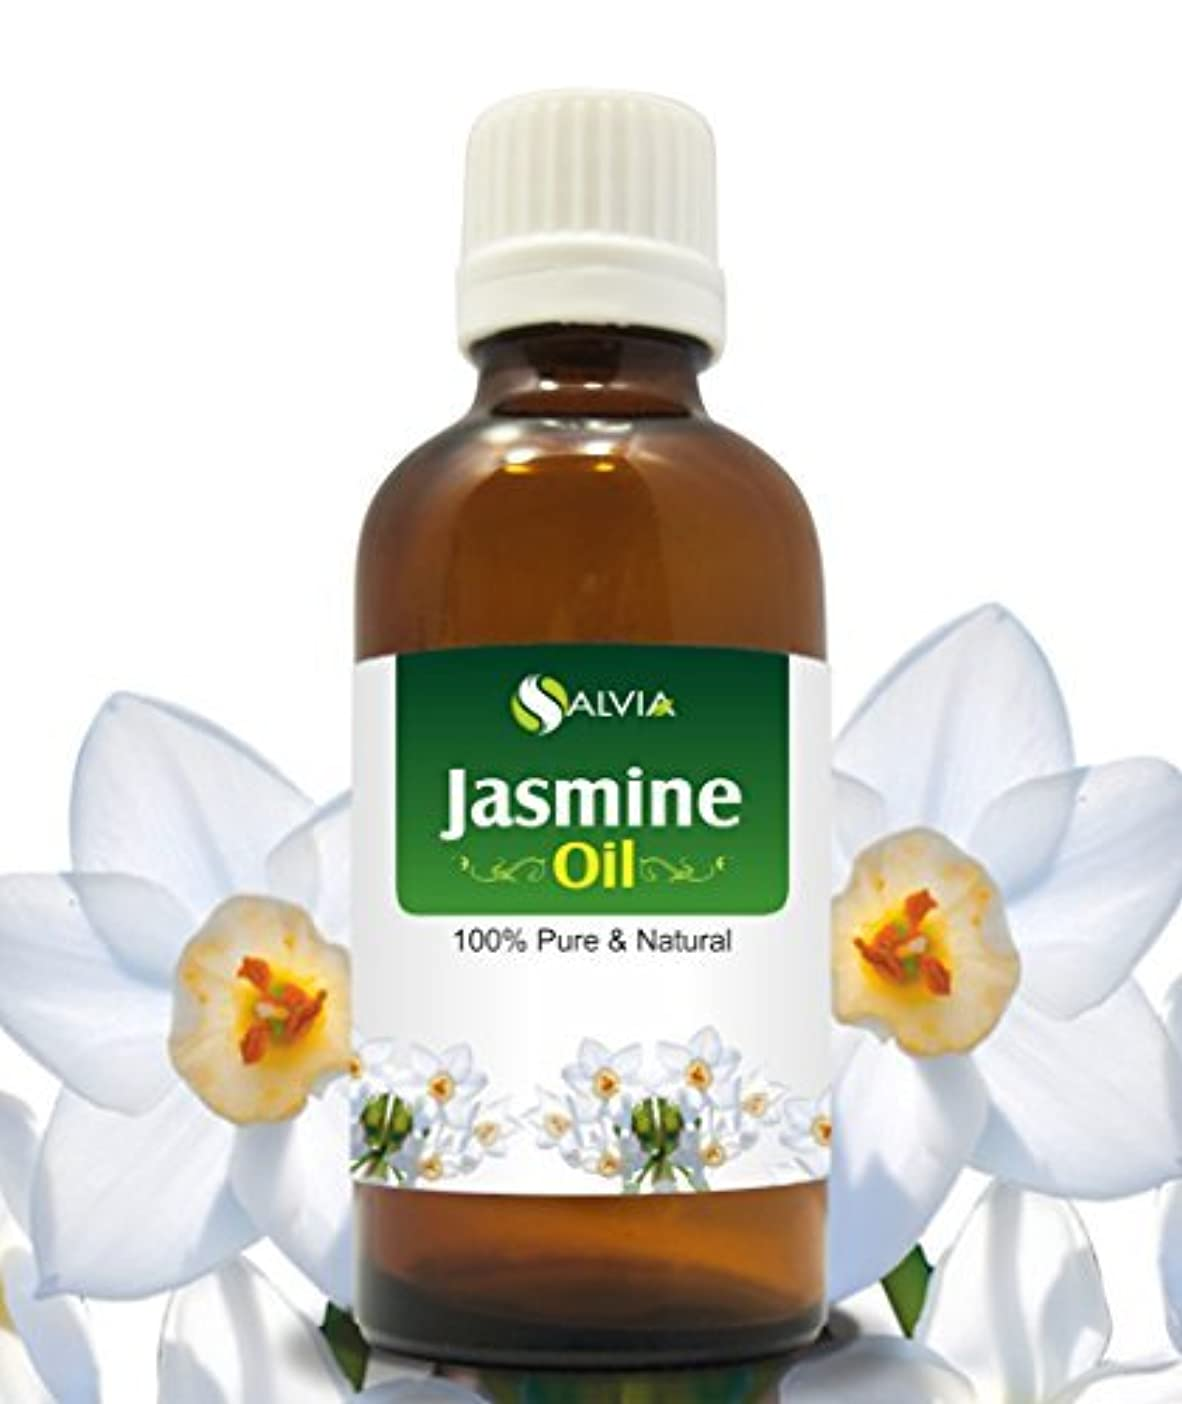 アプライアンスアンテナ司書JASMINE OIL 100% NATURAL PURE UNDILUTED UNCUT ESSENTIAL OILS 15ml by SALVIA